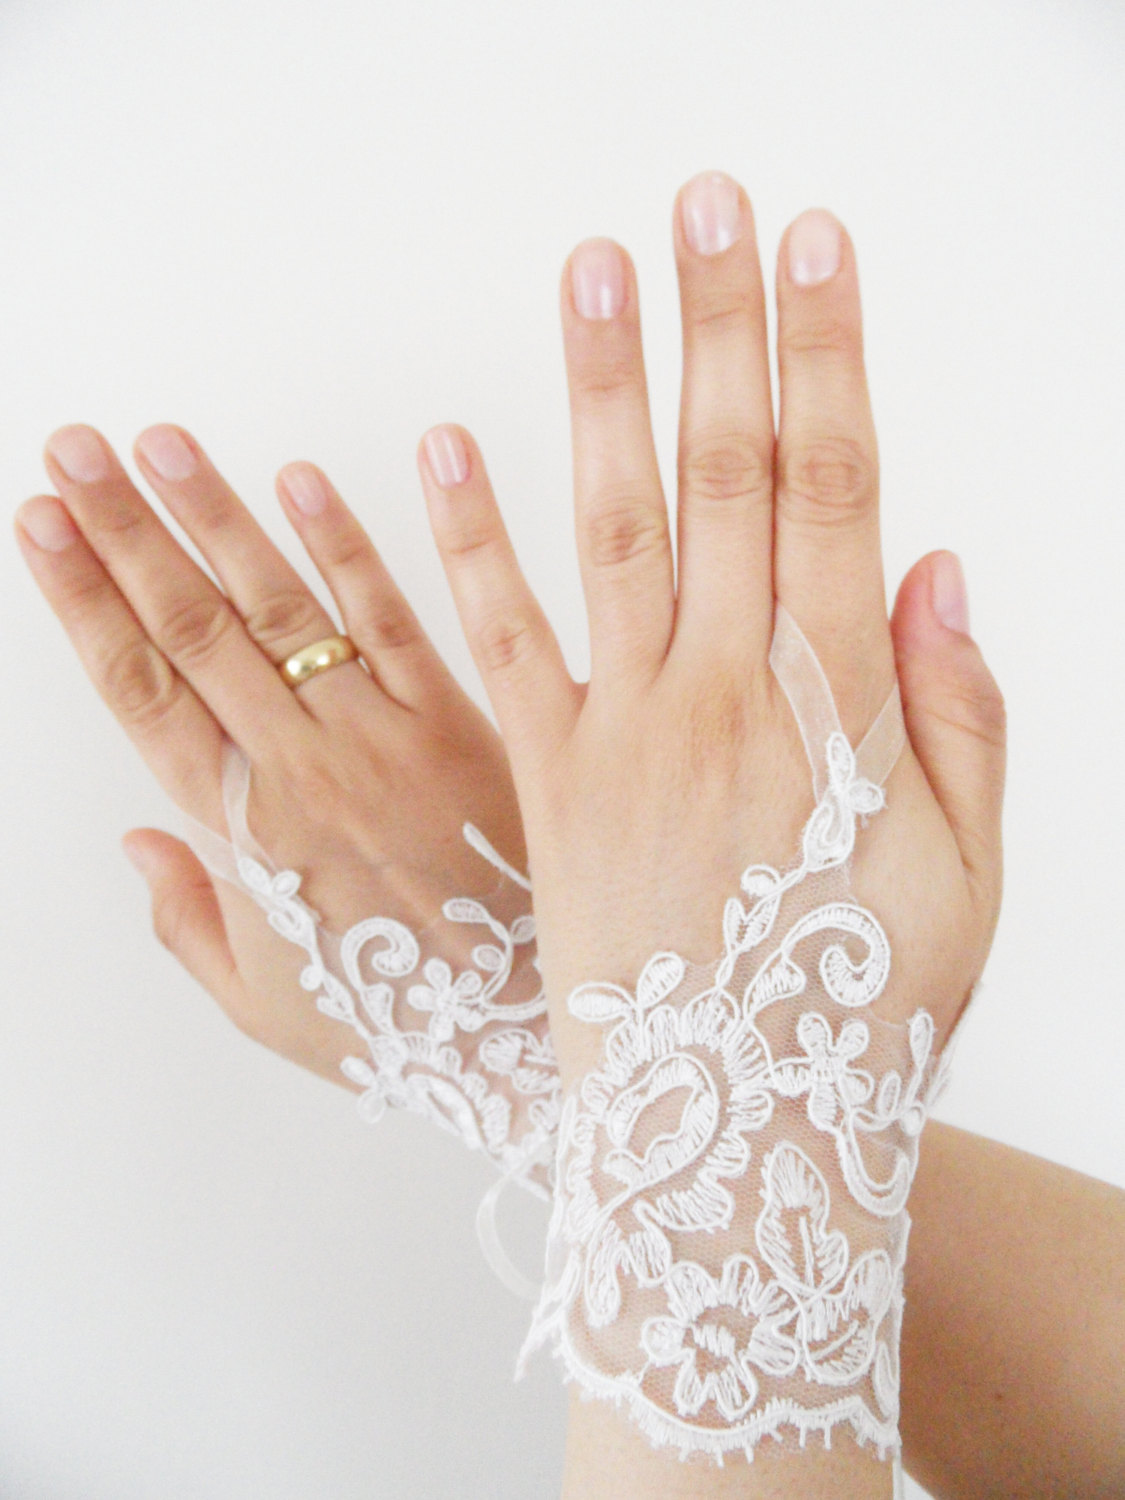 Wedding Gloves: Find Customized Wedding Gloves And Ensure The Right Look